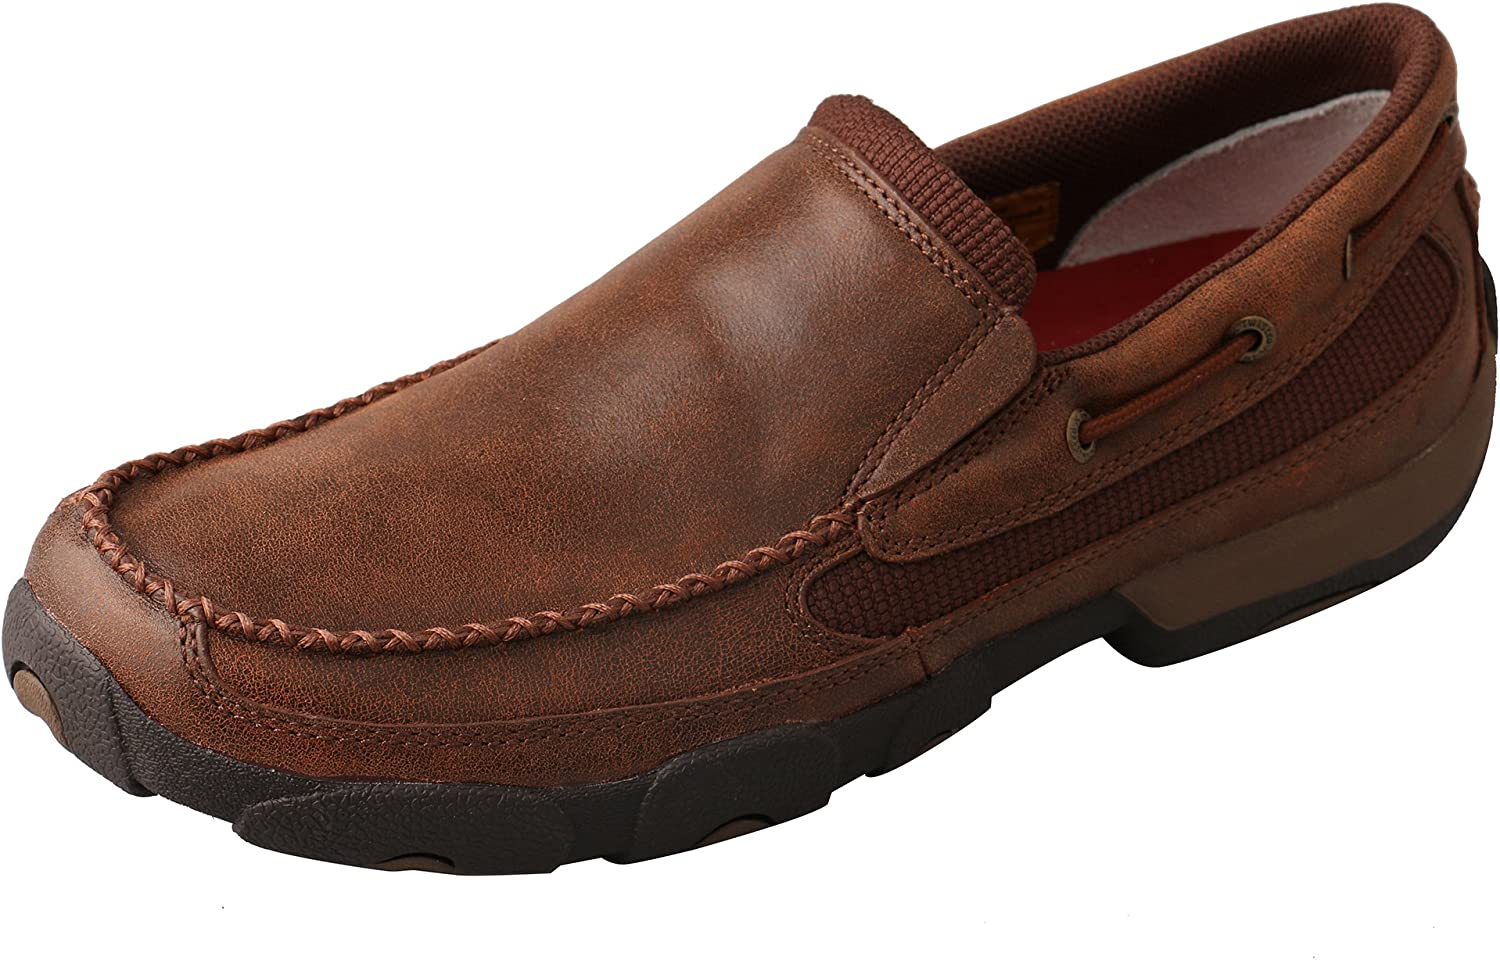 Twisted X Men's Leather Slip-On Rubber Sole Roune Toe Driving Moccasins - Brown